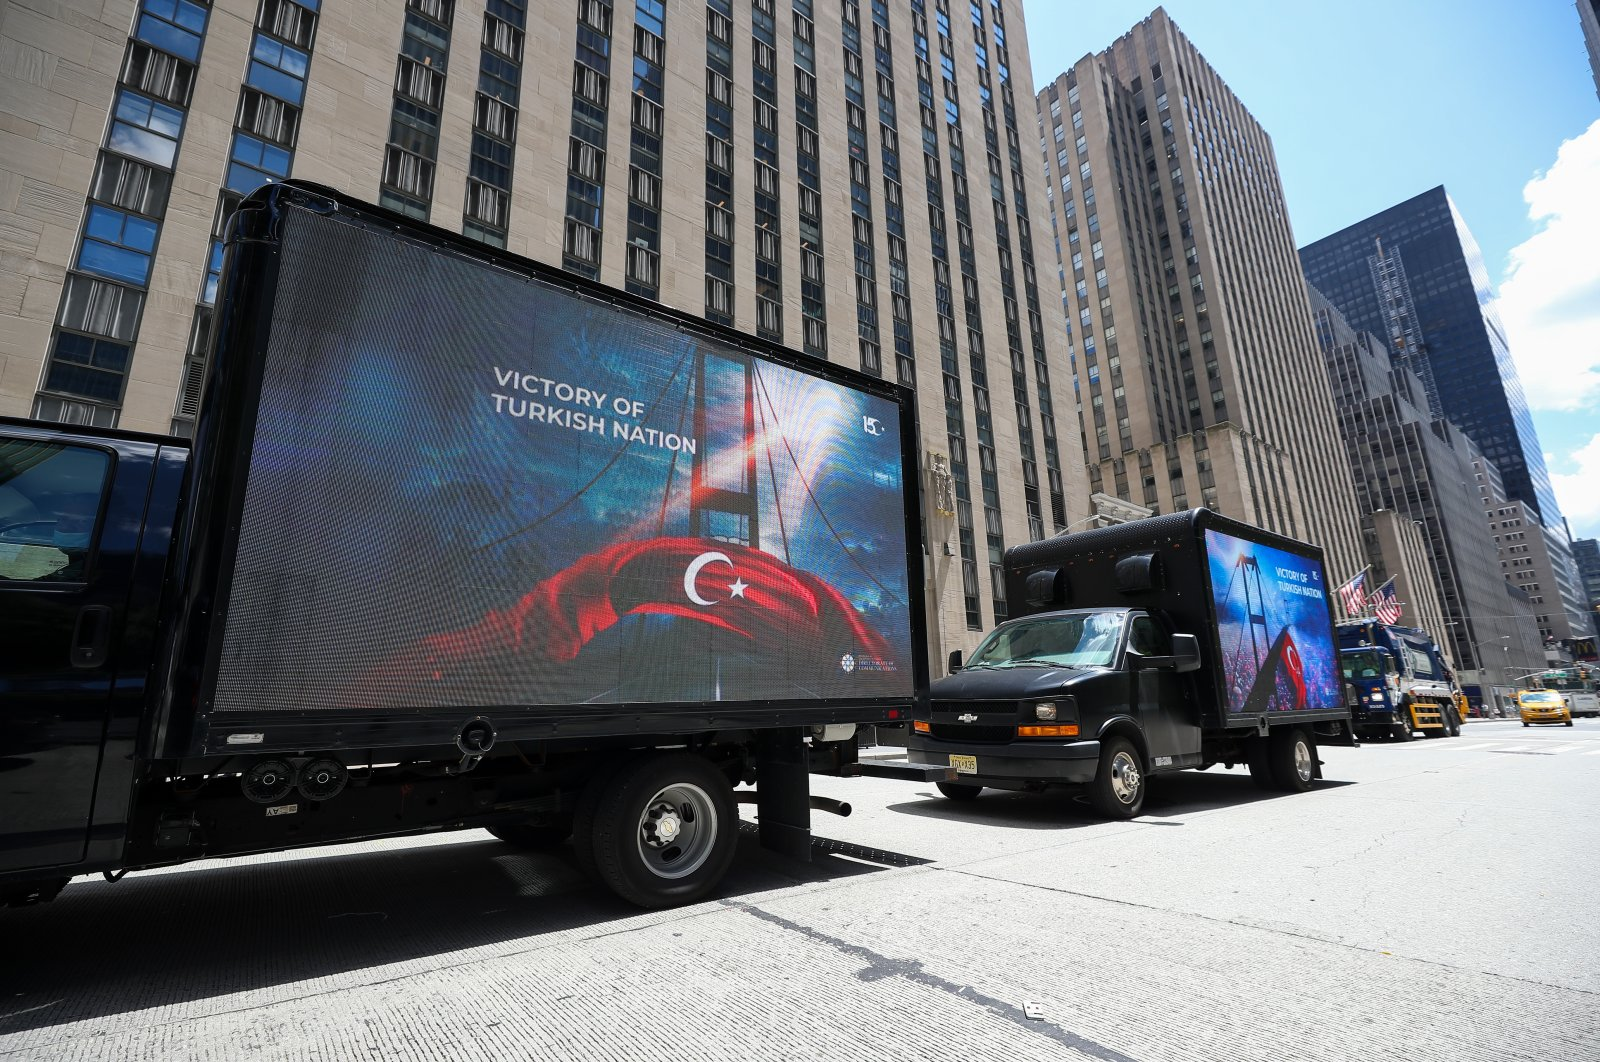 Digital LED vans with banners tour New York City to raise awareness about the defeated coup staged by the Gülenist Terror Group (FETÖ) ahead of the fourth anniversary of the July 15 coup attempt in Turkey, New York, July 14, 2020. (AA Photo)